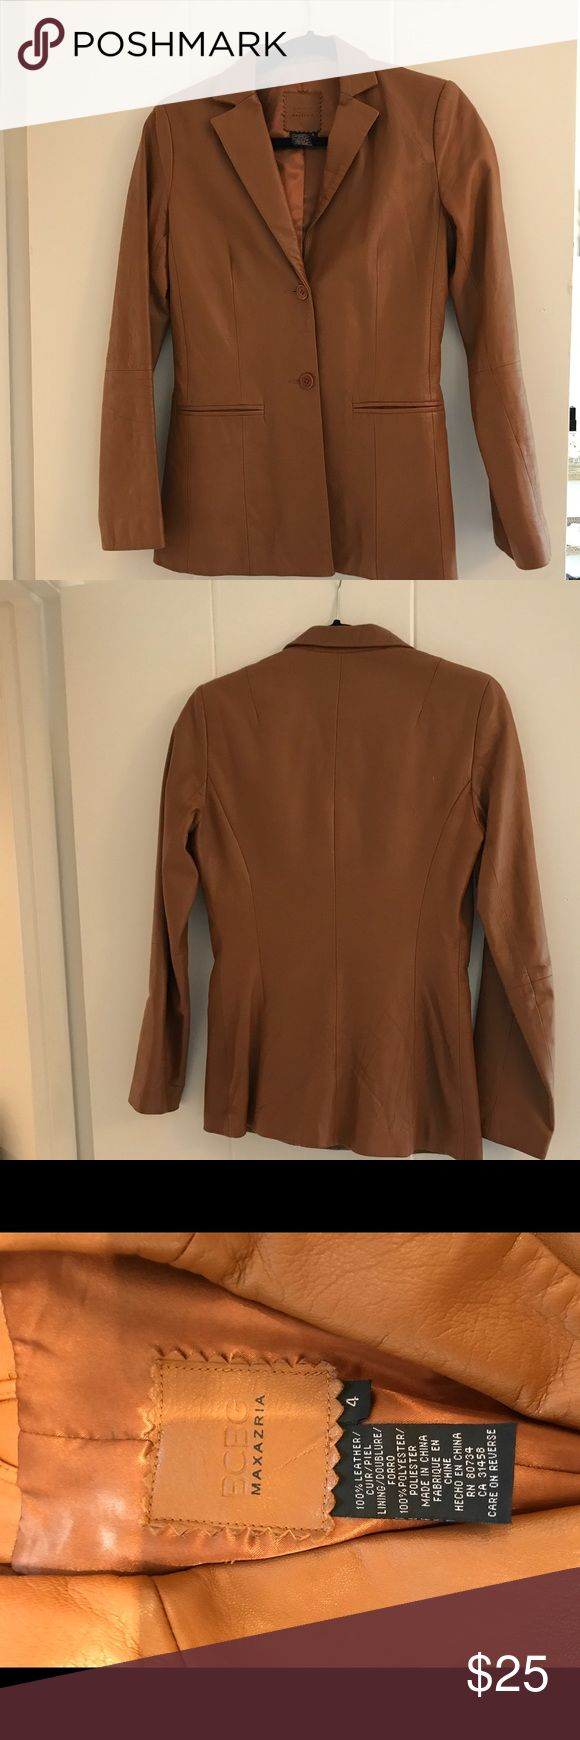 Leather jacket Gorgeous camel leather jacket.  Finley taylor Ed by BCBG Max Azria BCBGMaxAzria Jackets & Coats Blazers